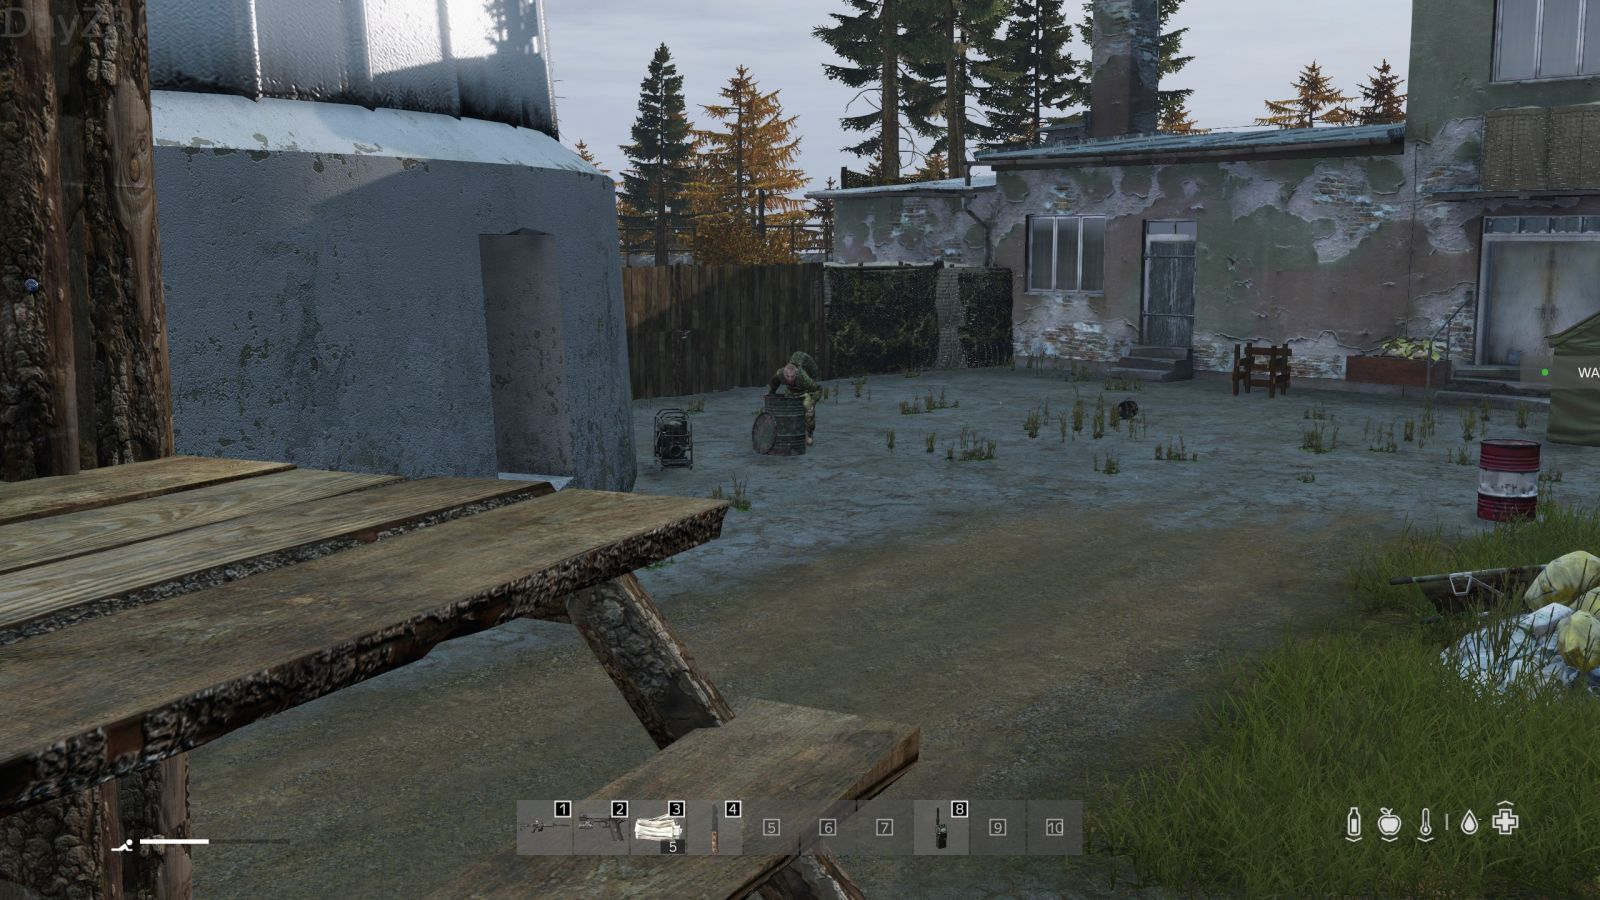 How smart are zombies if they can get stuck in a barrel?